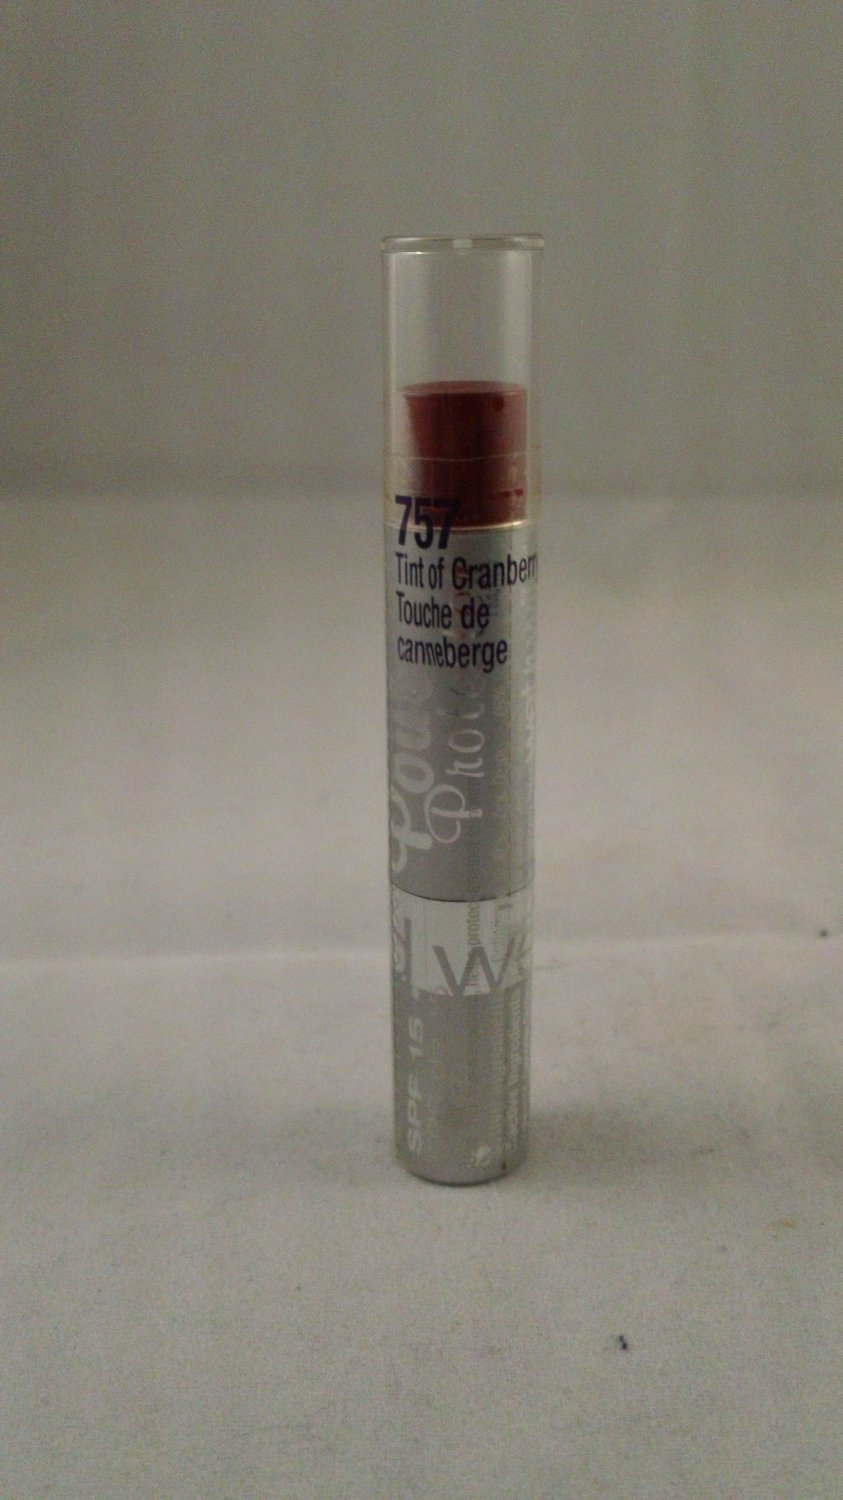 Wet n Wild Pout Protector Tinted Lip Balm Lipstick #757 Tint of Cranberry protection